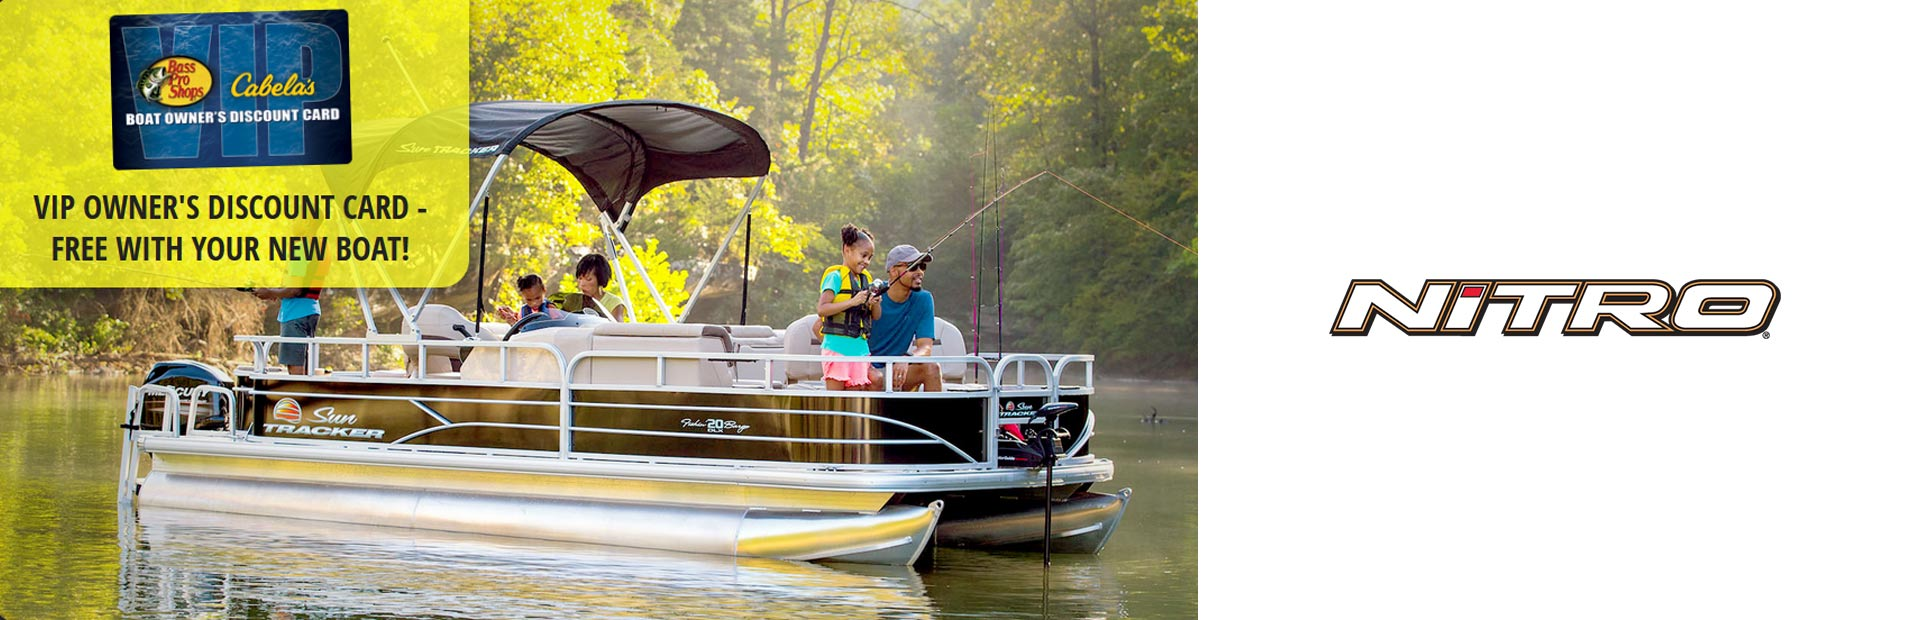 Nitro: Bass Pro/Cabela's VIP Card w/ NITRO Boat Purchase